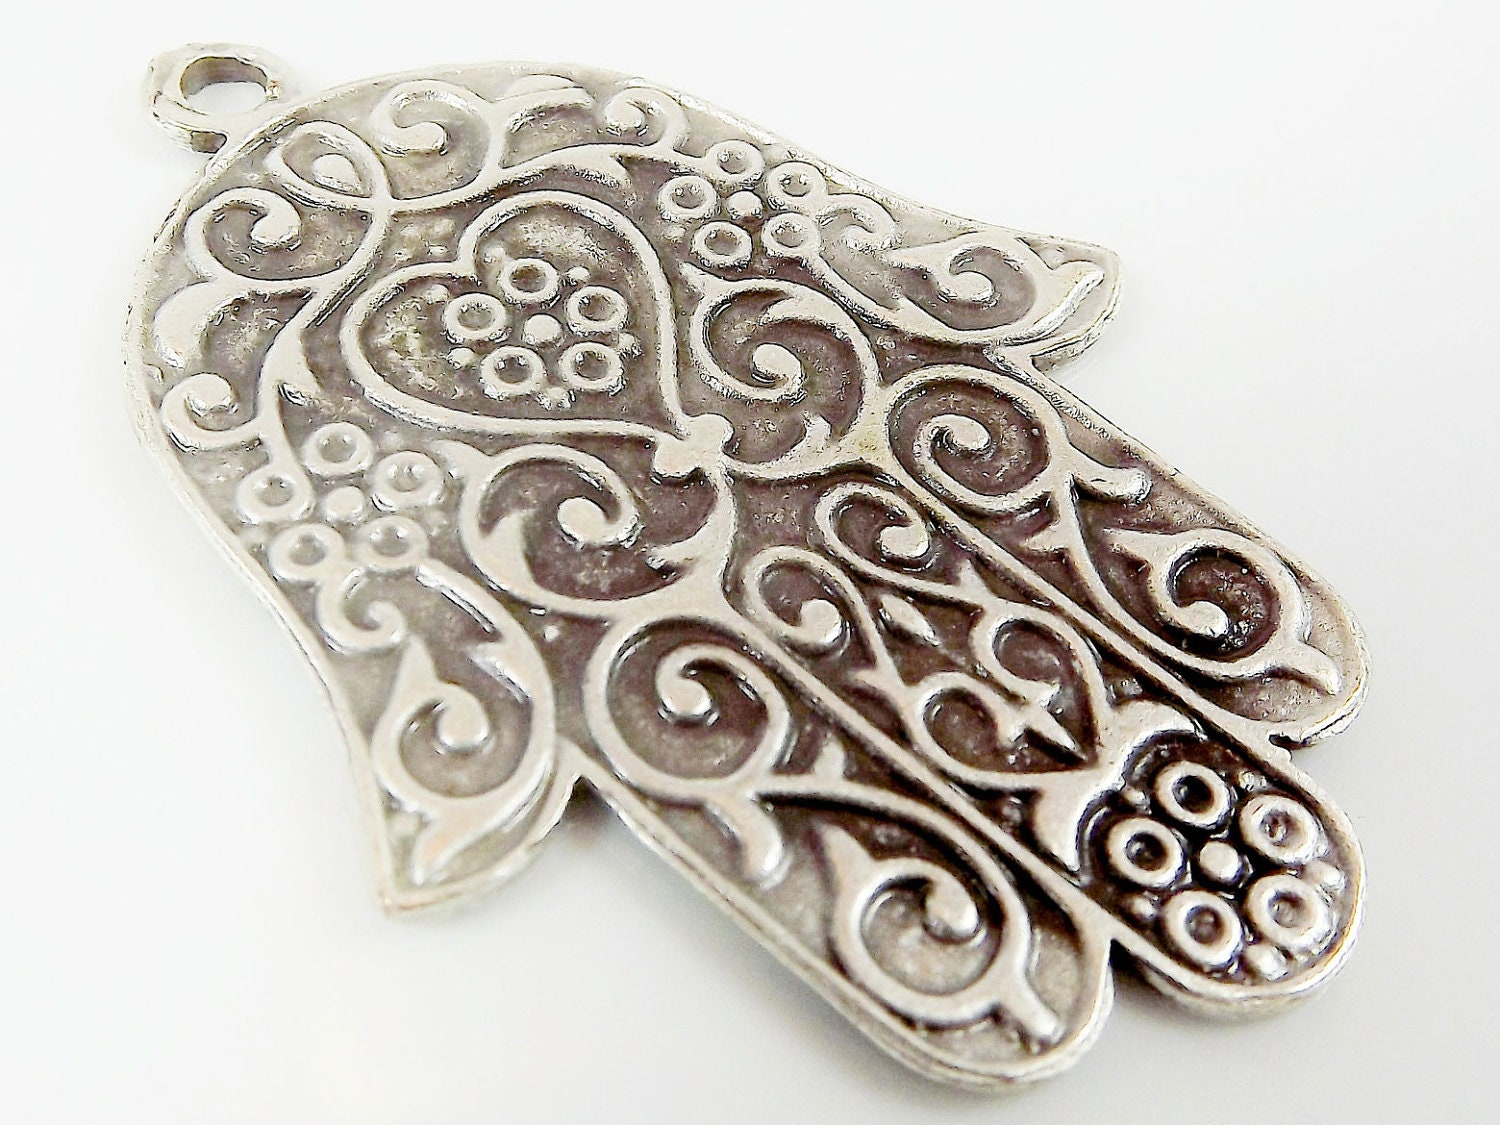 Ornate hamsa hand of fatima pendant charm silver plated zoom mozeypictures Gallery